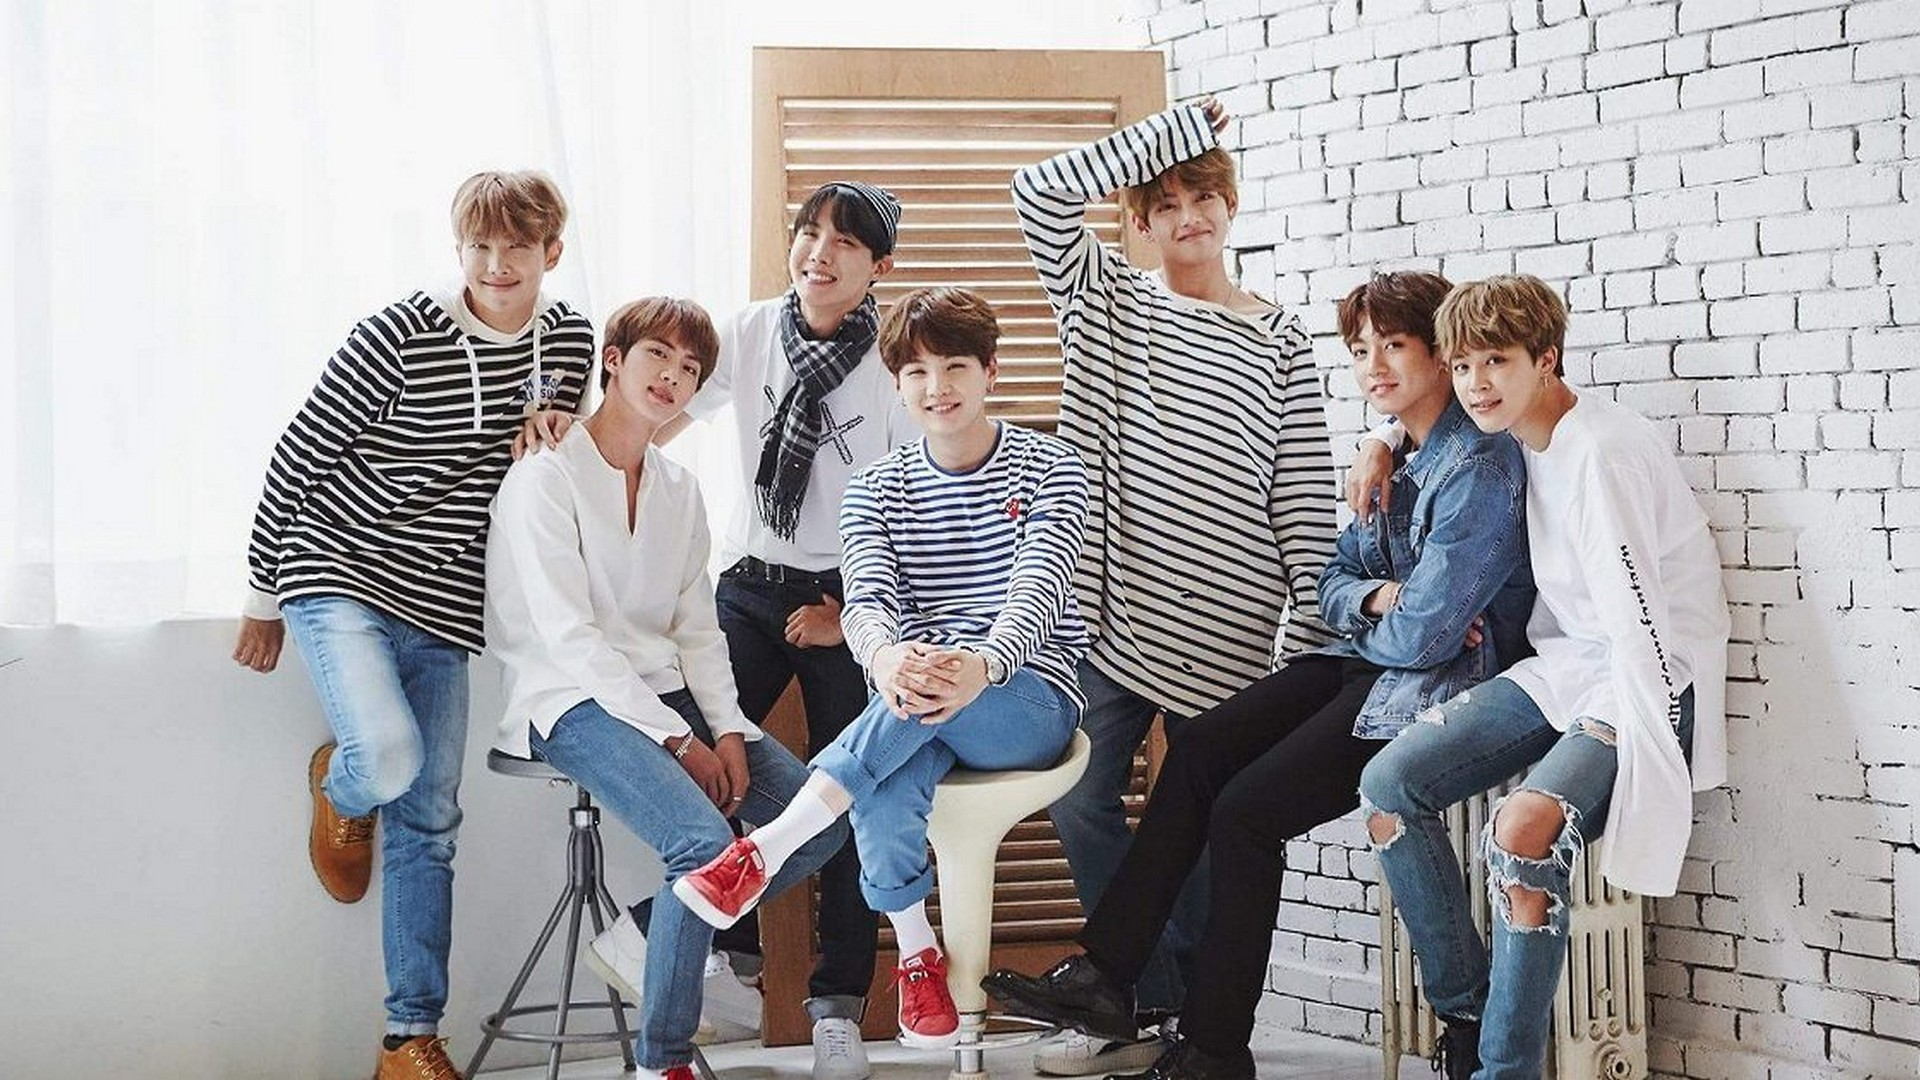 BTS HD Wallpaper 2019 Live Wallpaper HD